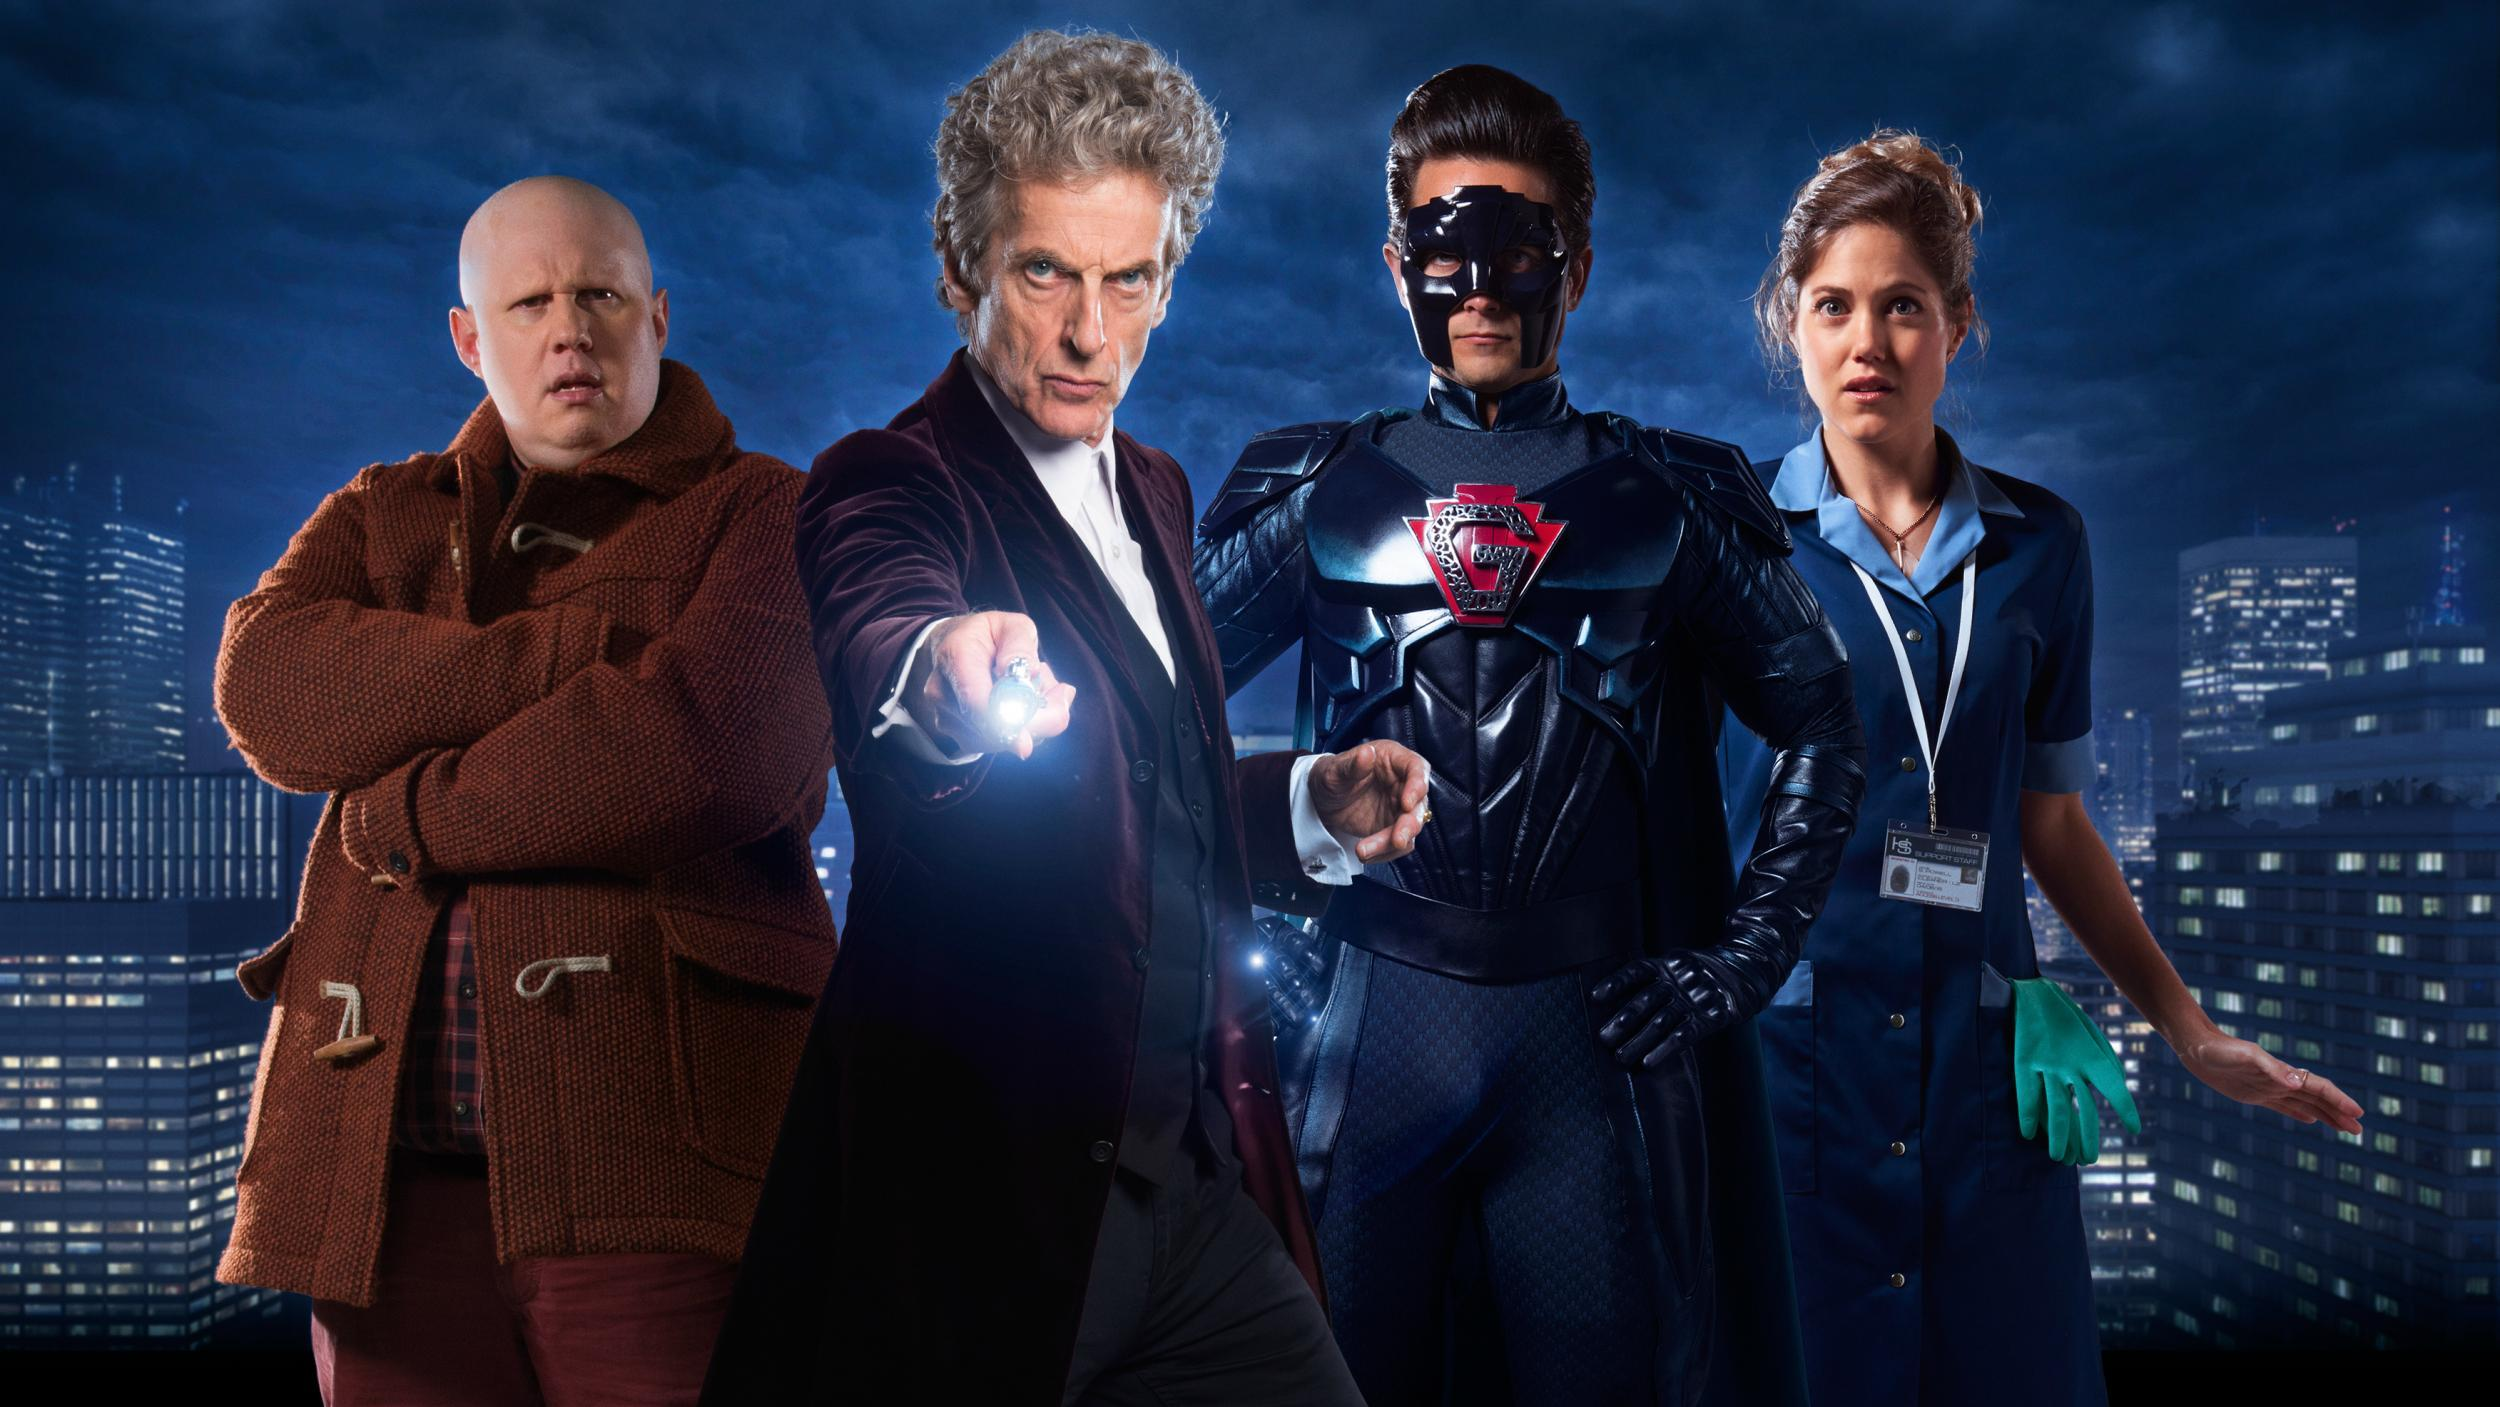 Watch Dr Who Christmas Special 2020 Doctor Who Christmas Special Watch Online 2020 | Wkbdkm